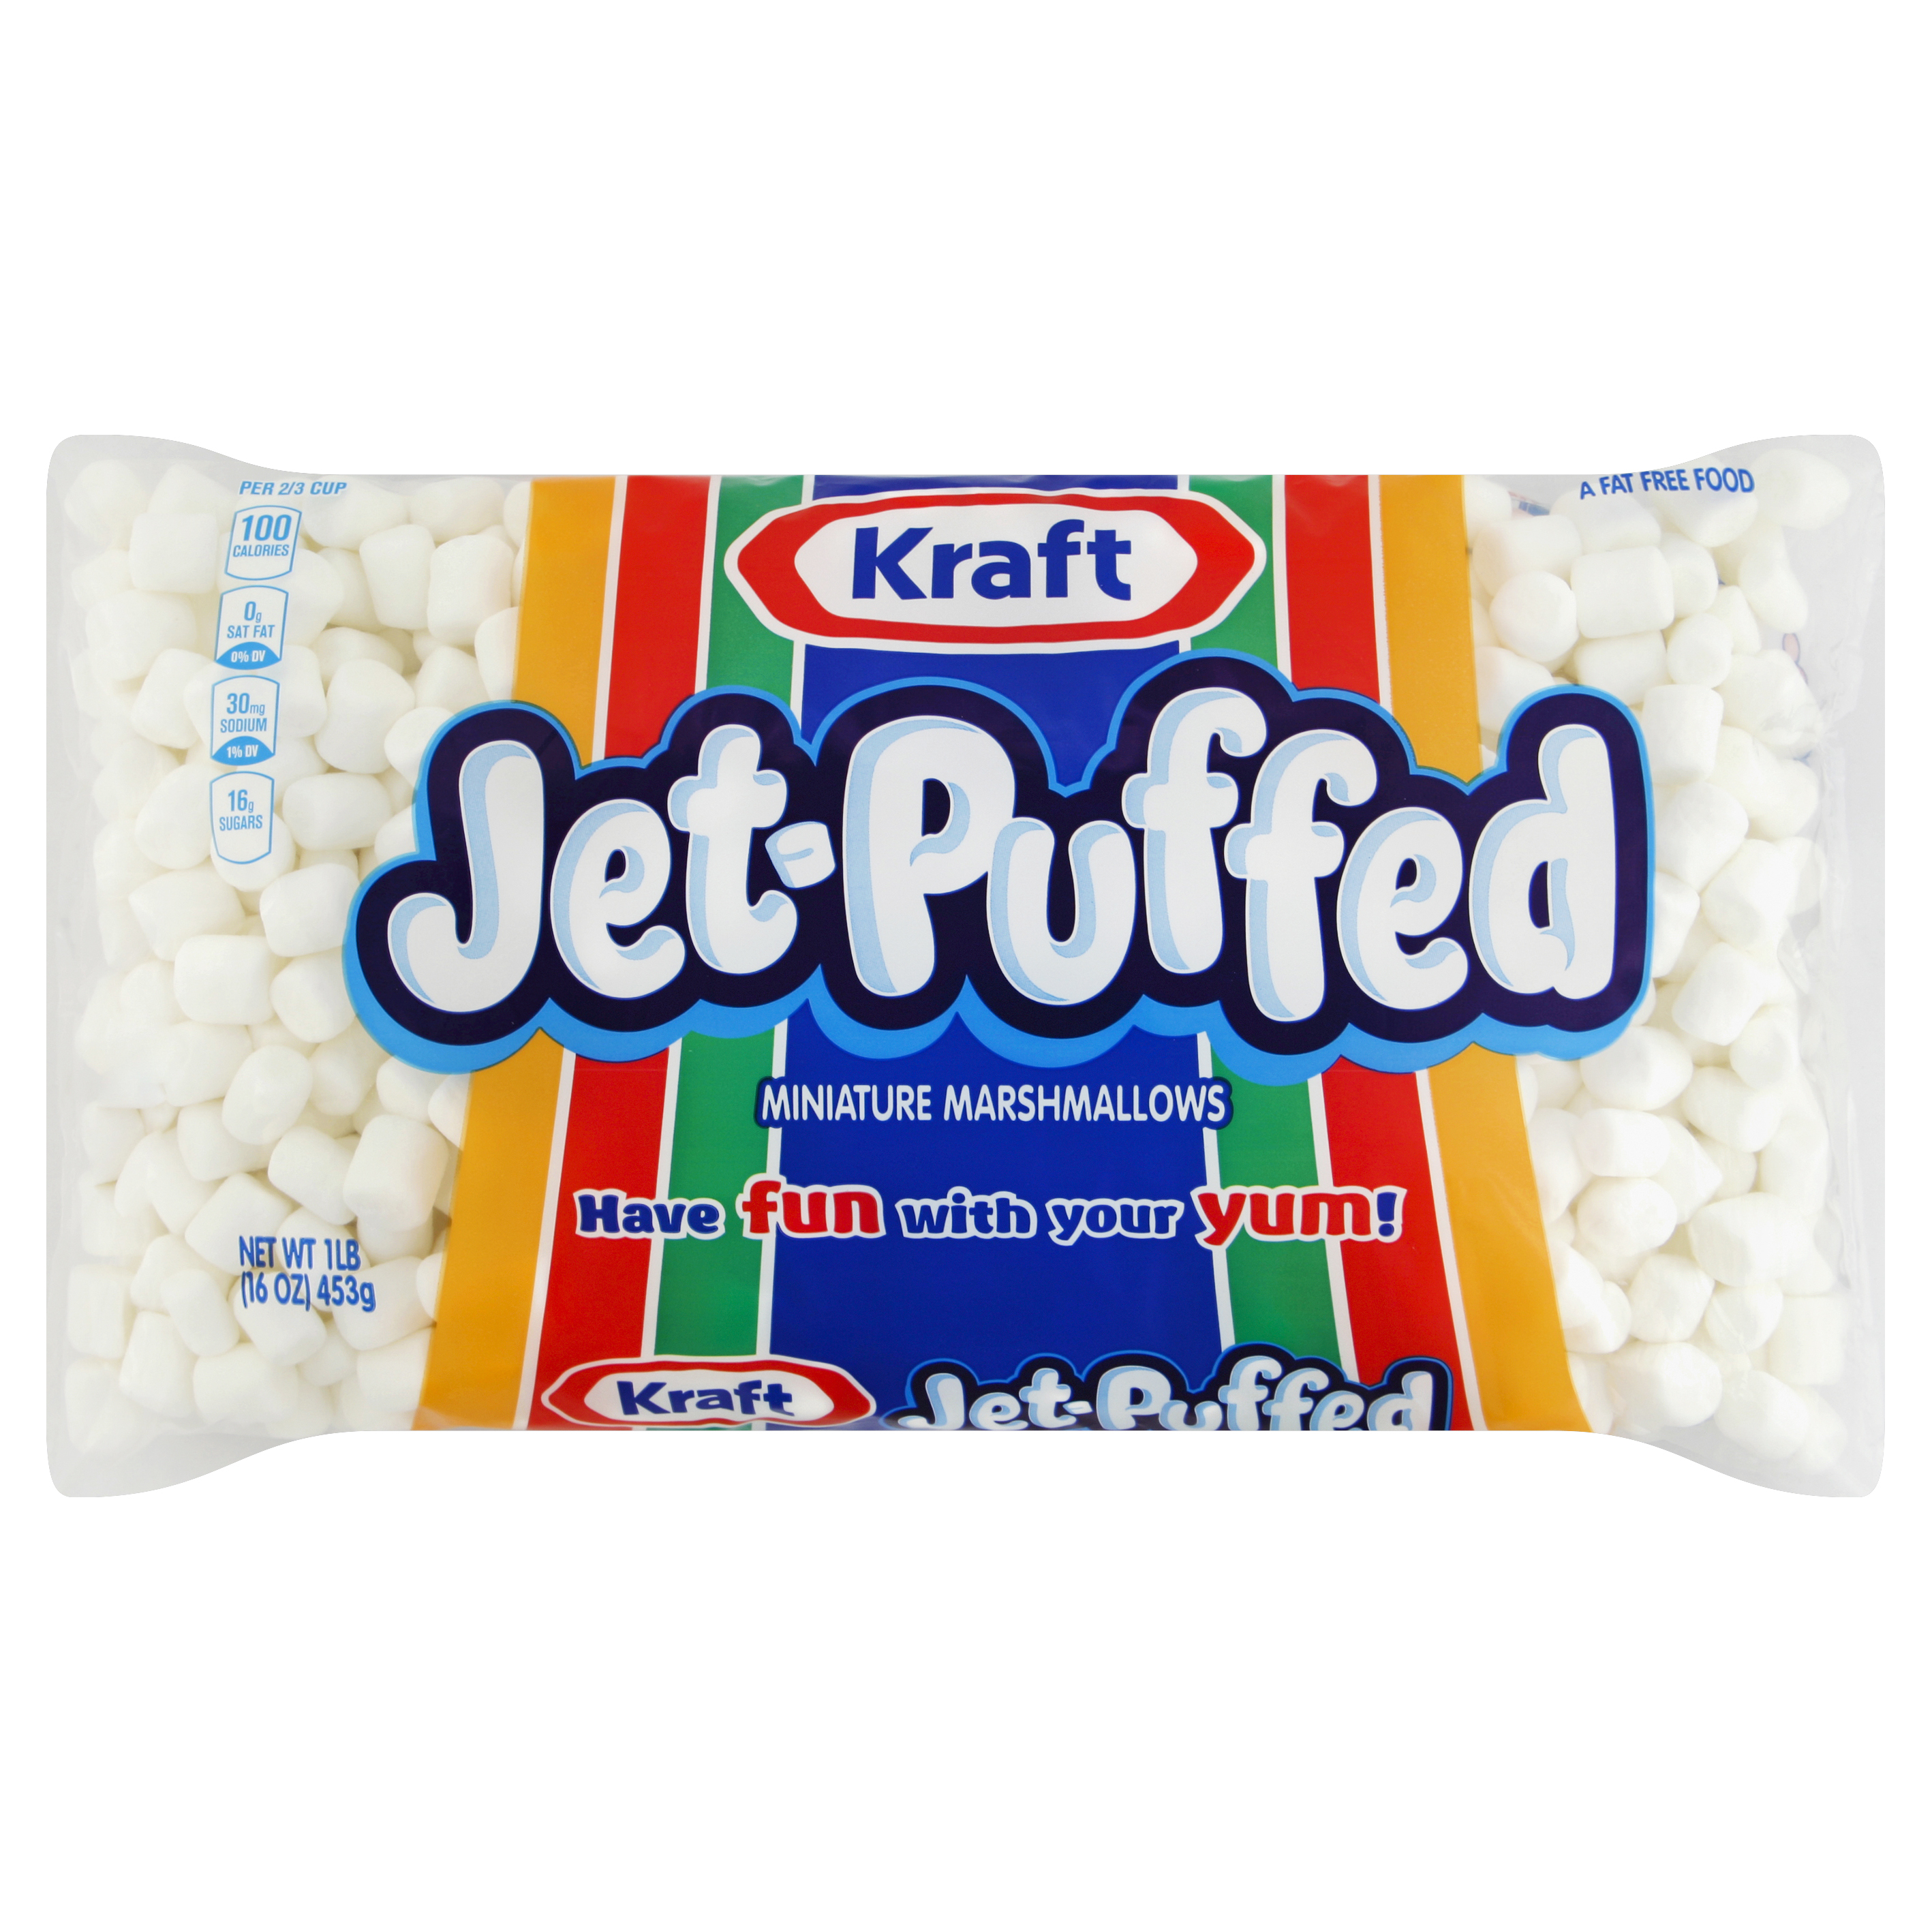 Jet-Puffed Mini Marshmallows, 16 oz. image